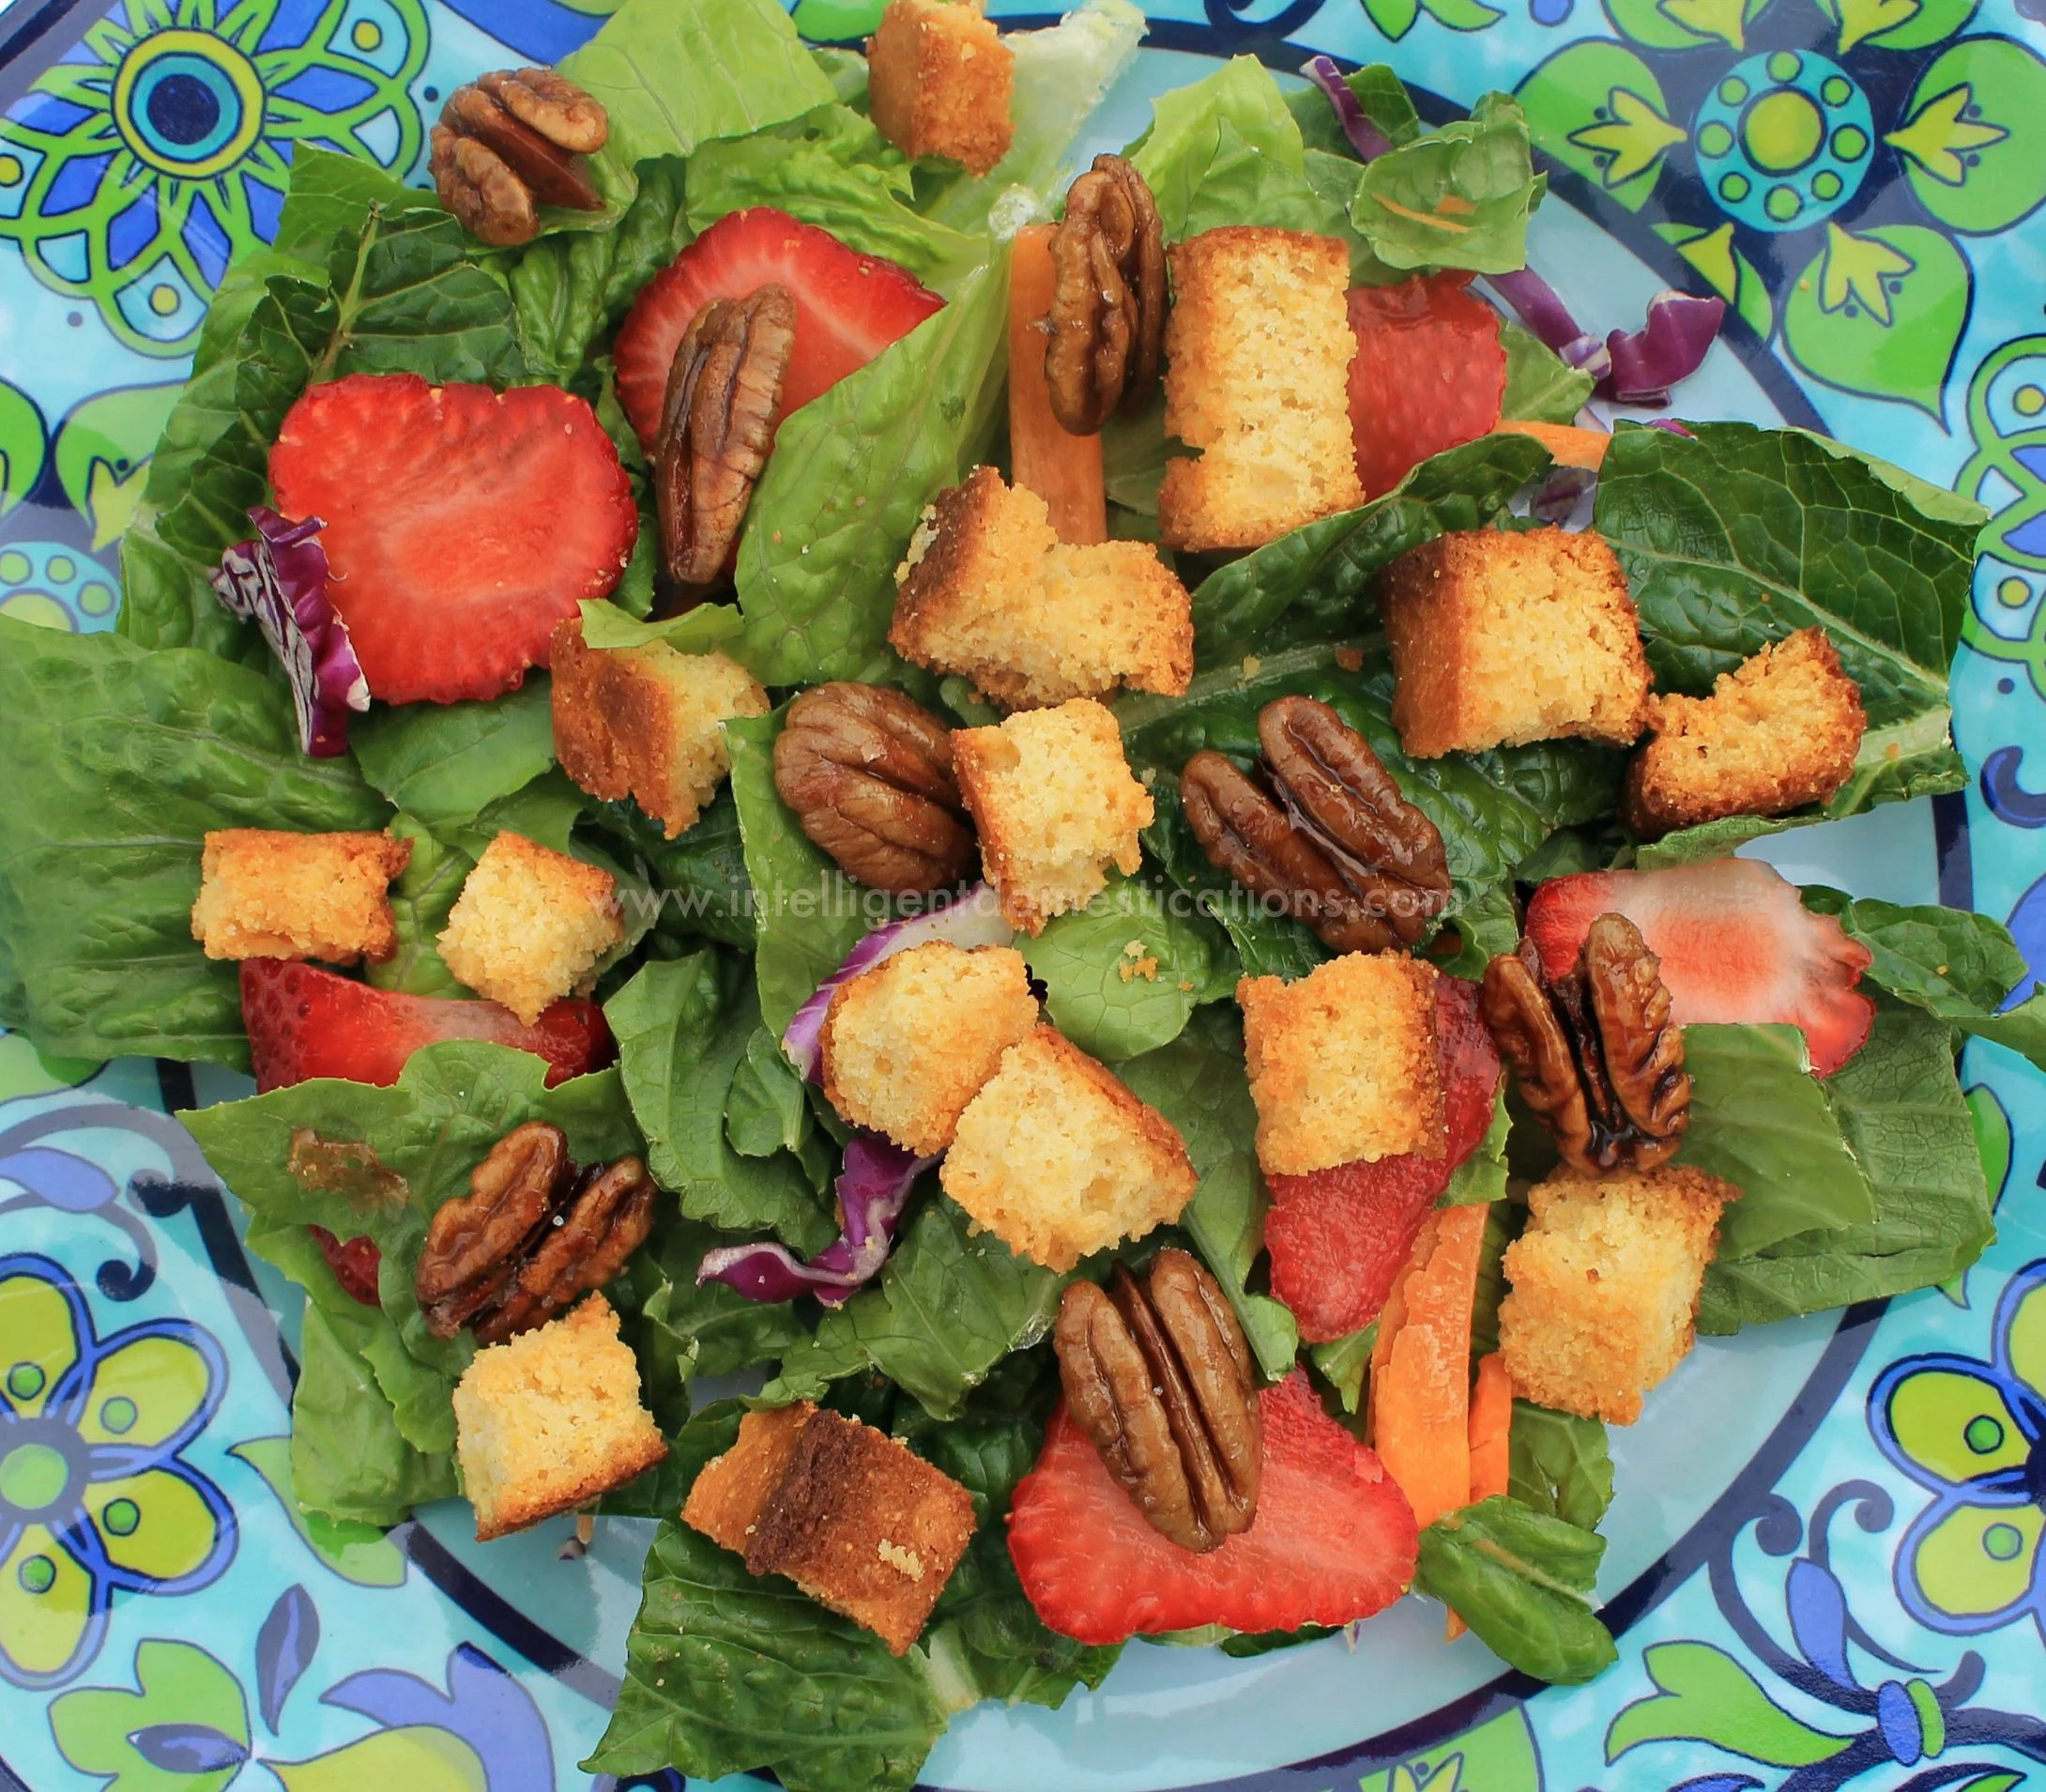 Top your salad with Sweet & Salty Candied Pecans and Cornbread Croutons for a burst of flavor. Recipes at www.intelligentdomestications.com